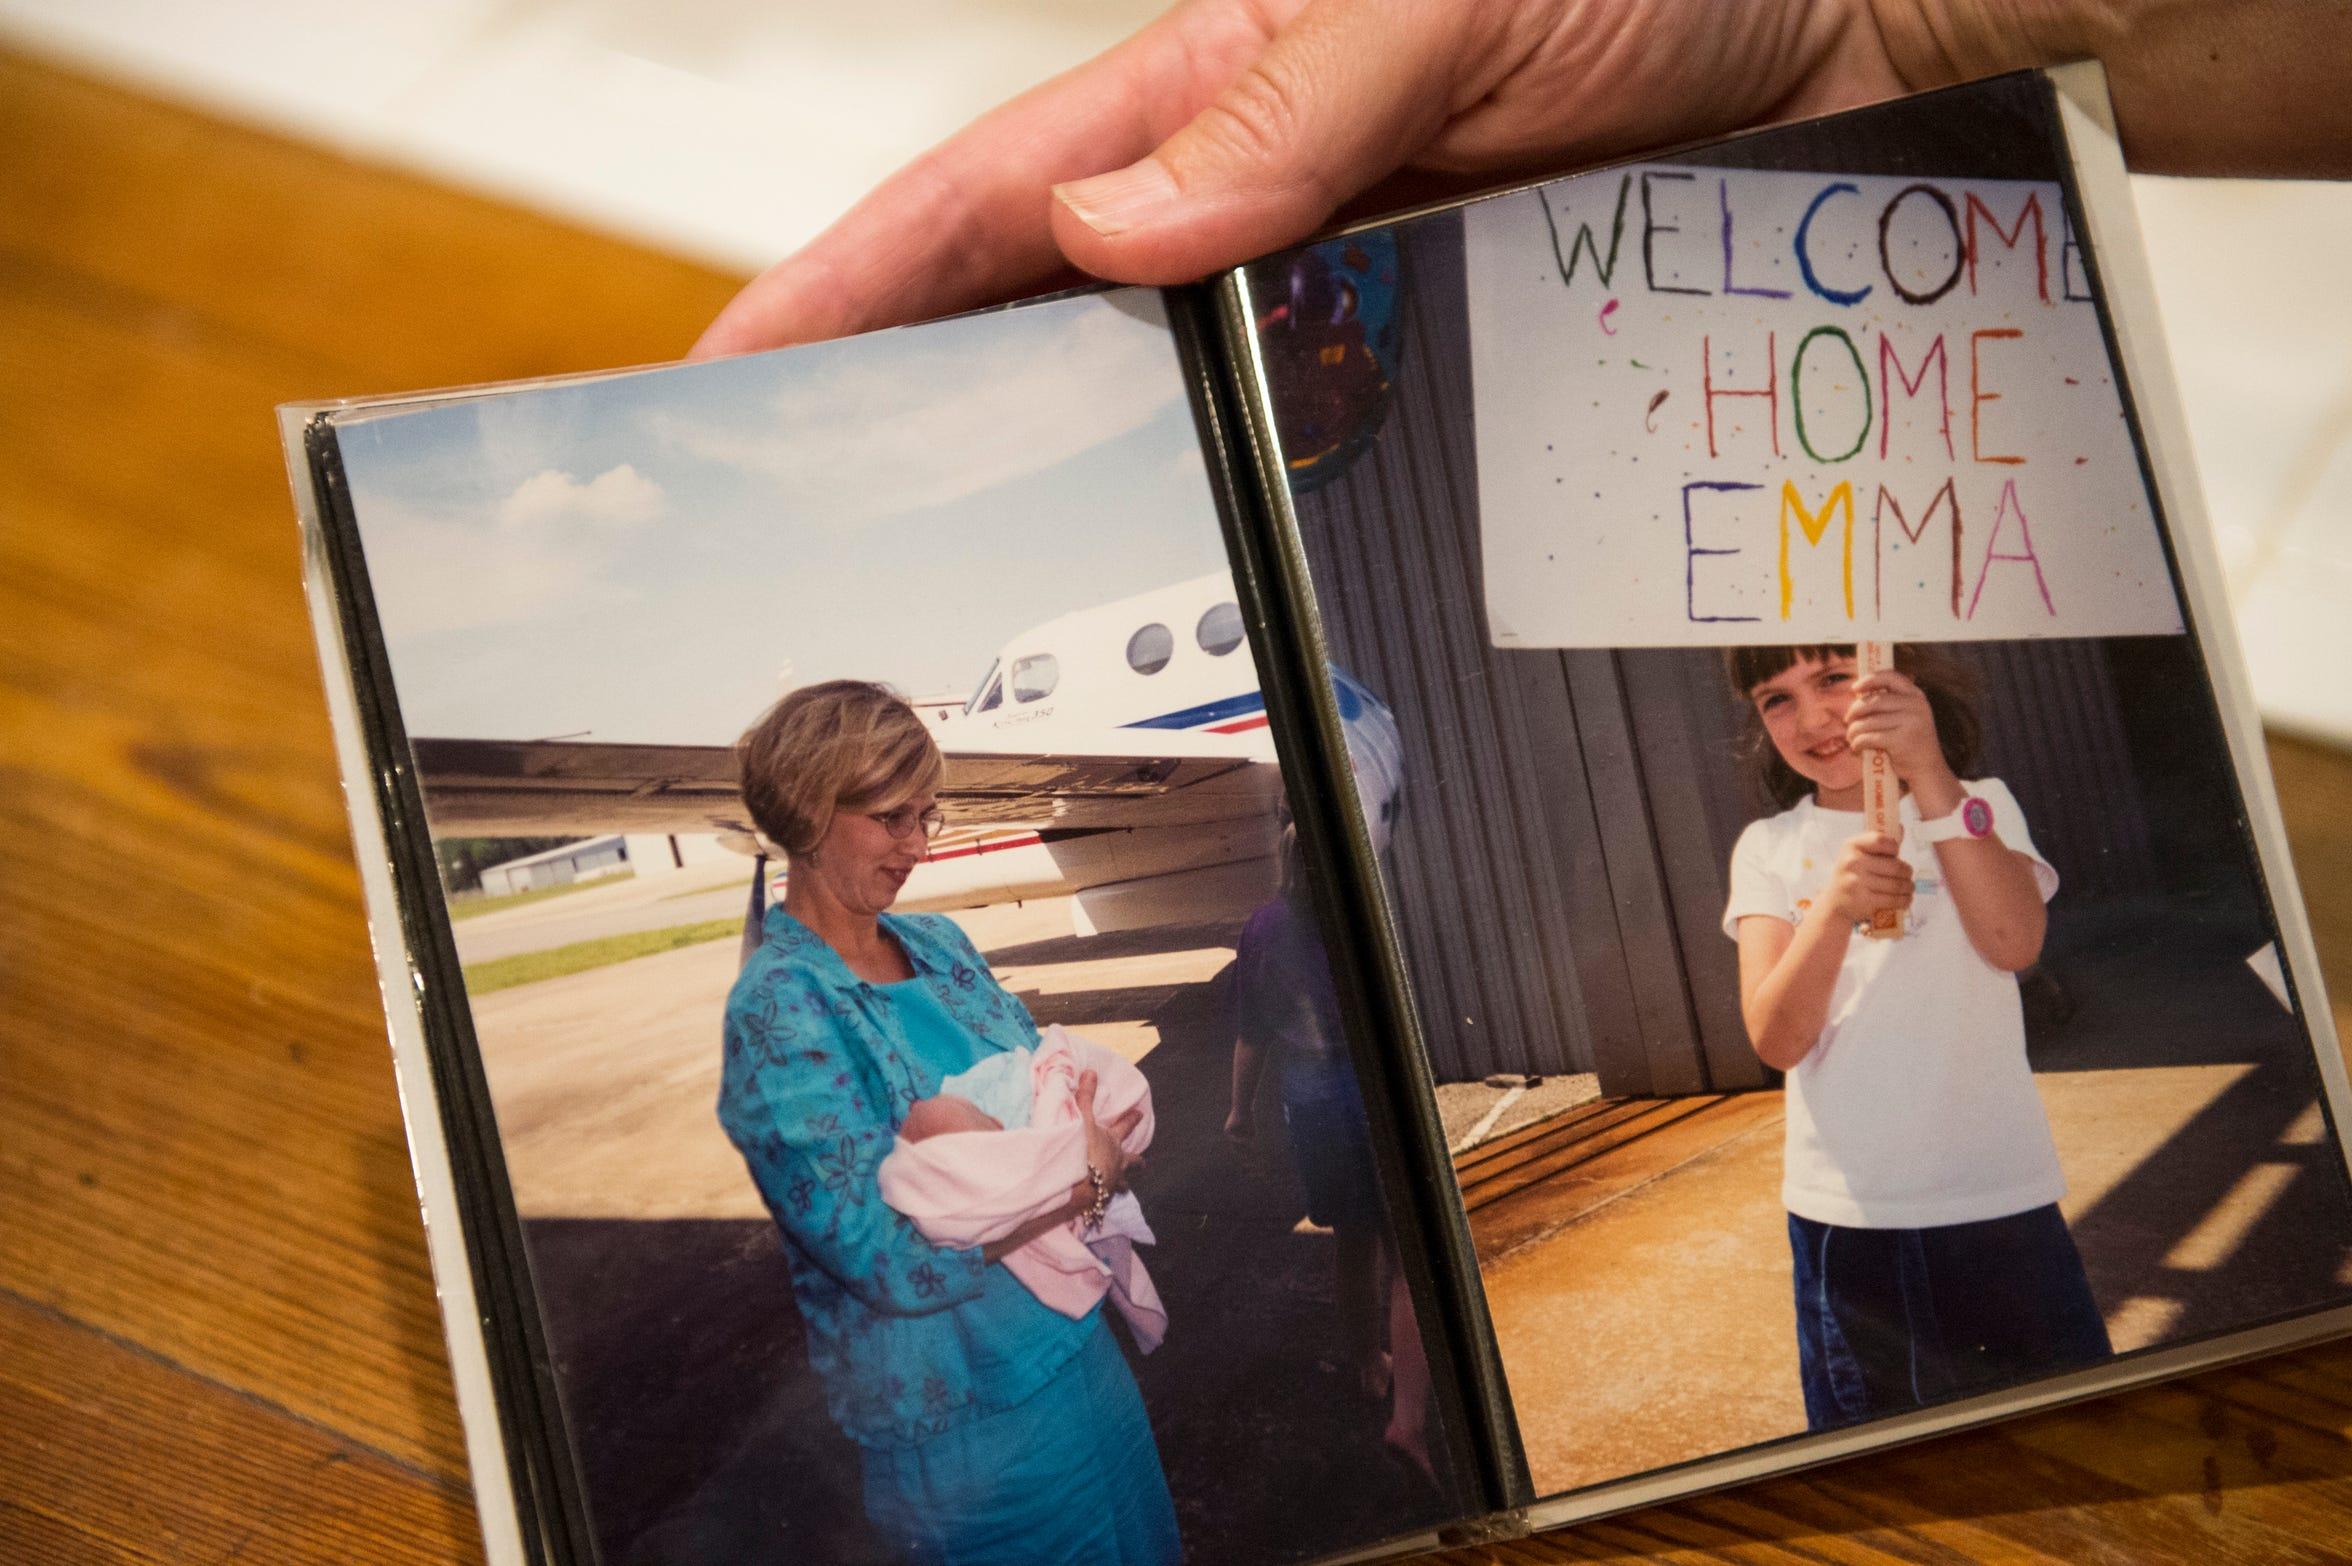 Photos of Dawn Wendland holding her newborn daughter, Emma, who was born with three congenital heart defects at the Wendland home in Autaugaville, Ala., on Wednesday, Aug. 28, 2019.